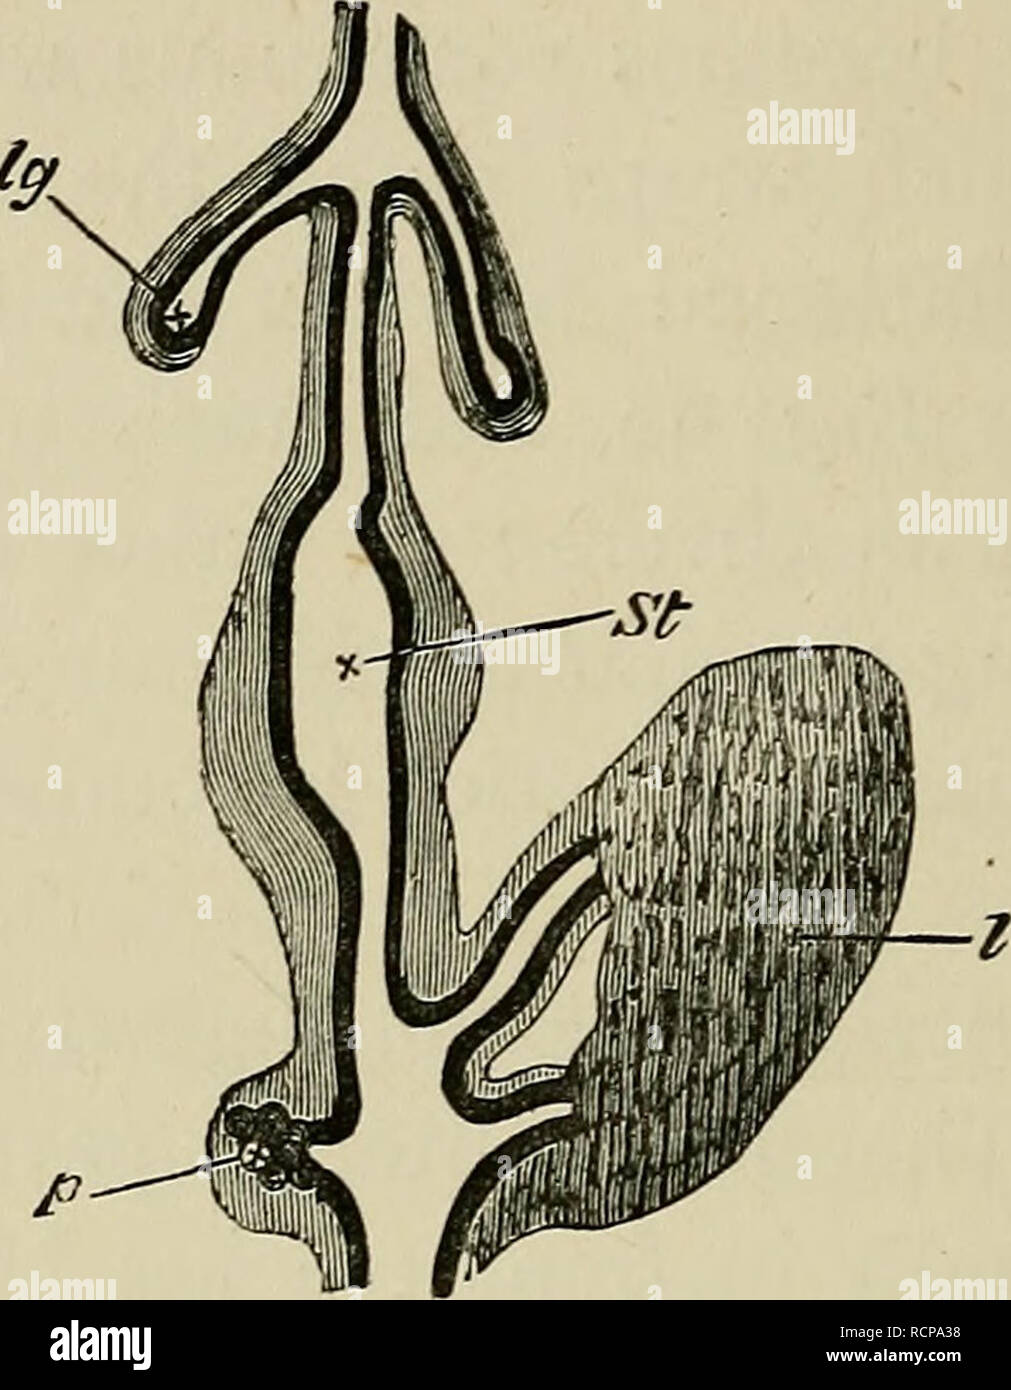 hight resolution of embryology embryology 174 the third day fig 60 chap diagram of a portion of the digestive tract of a chick upon the fourth day copied from gotte